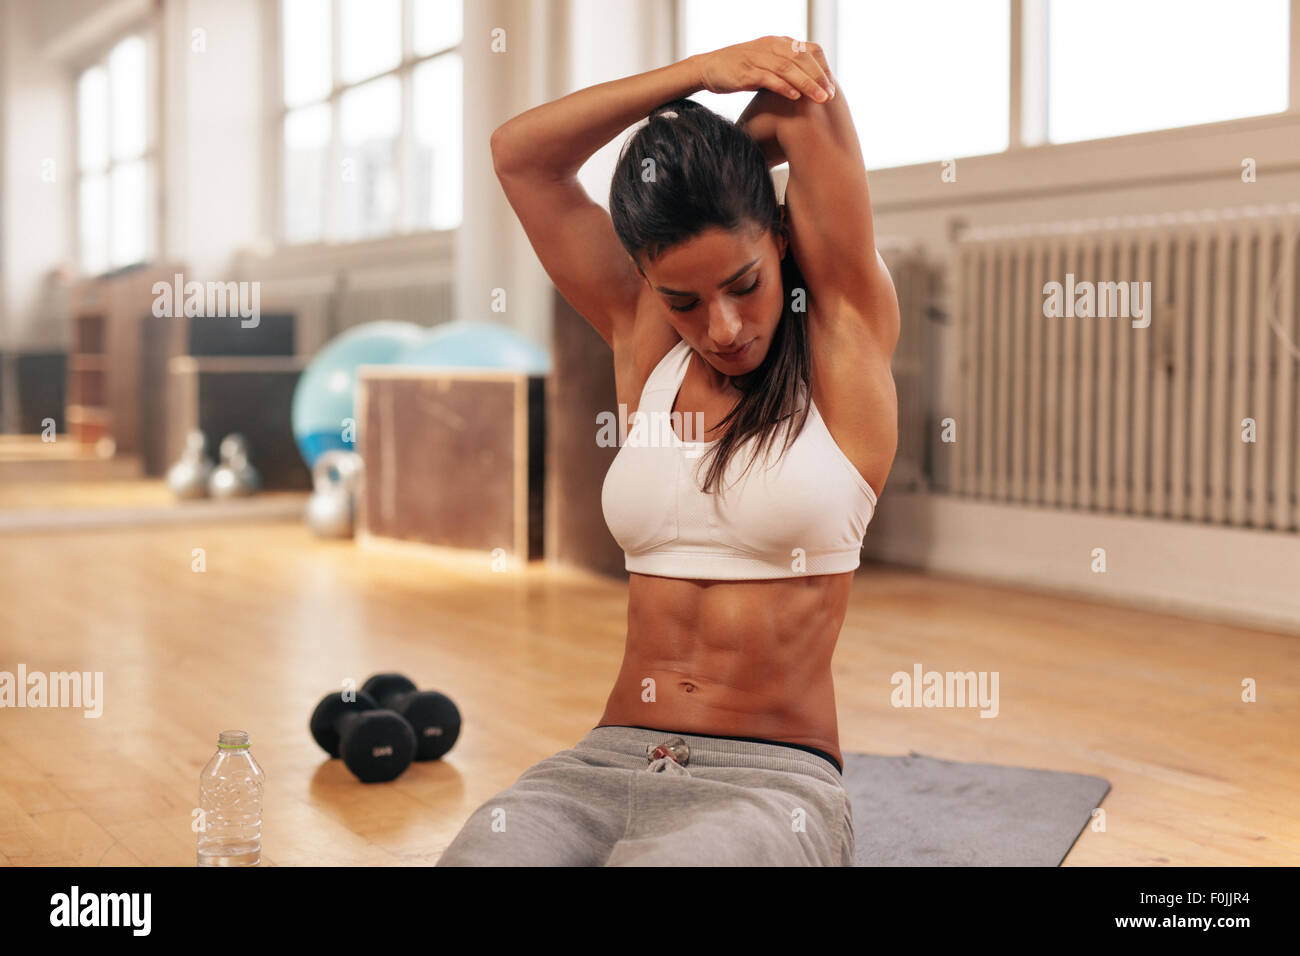 Fitness woman doing stretching exercise. Young woman stretching her arms while sitting on exercise mat at gym. - Stock Image